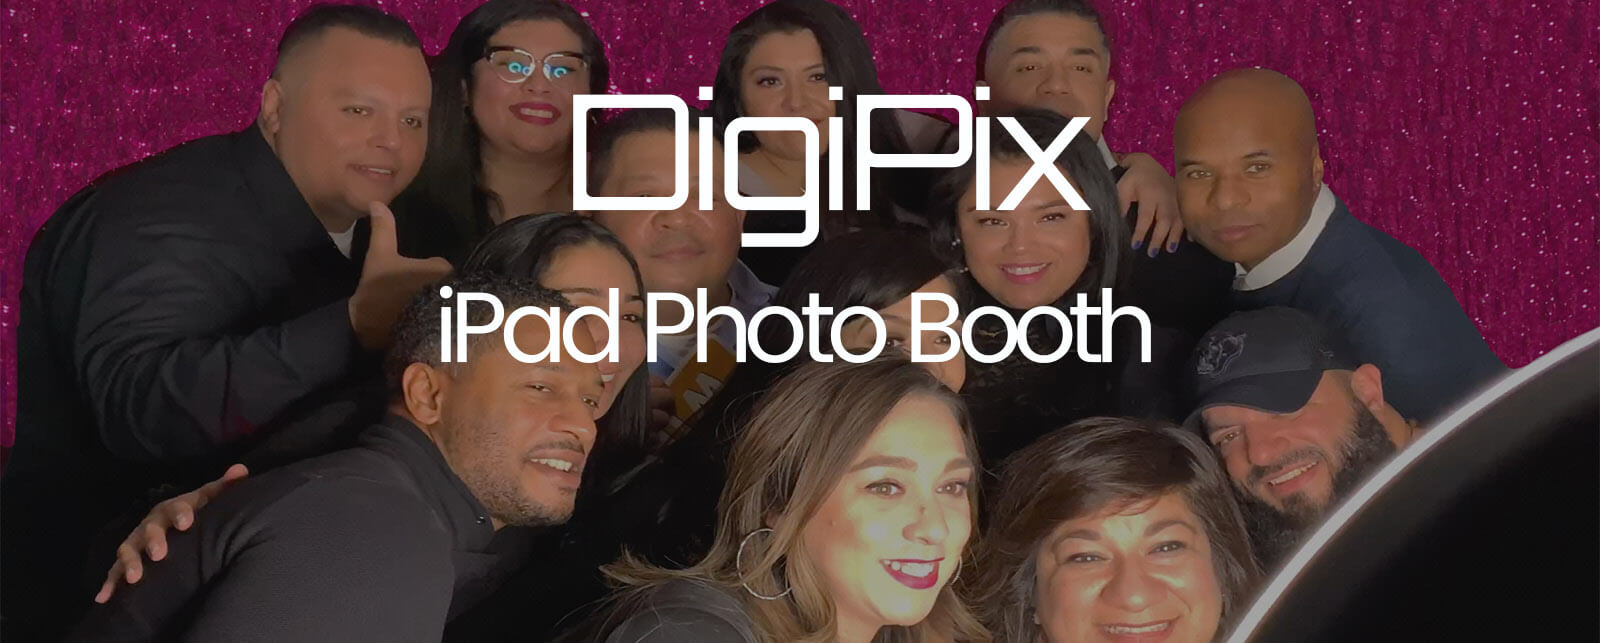 iPad Photo Booth For Sale